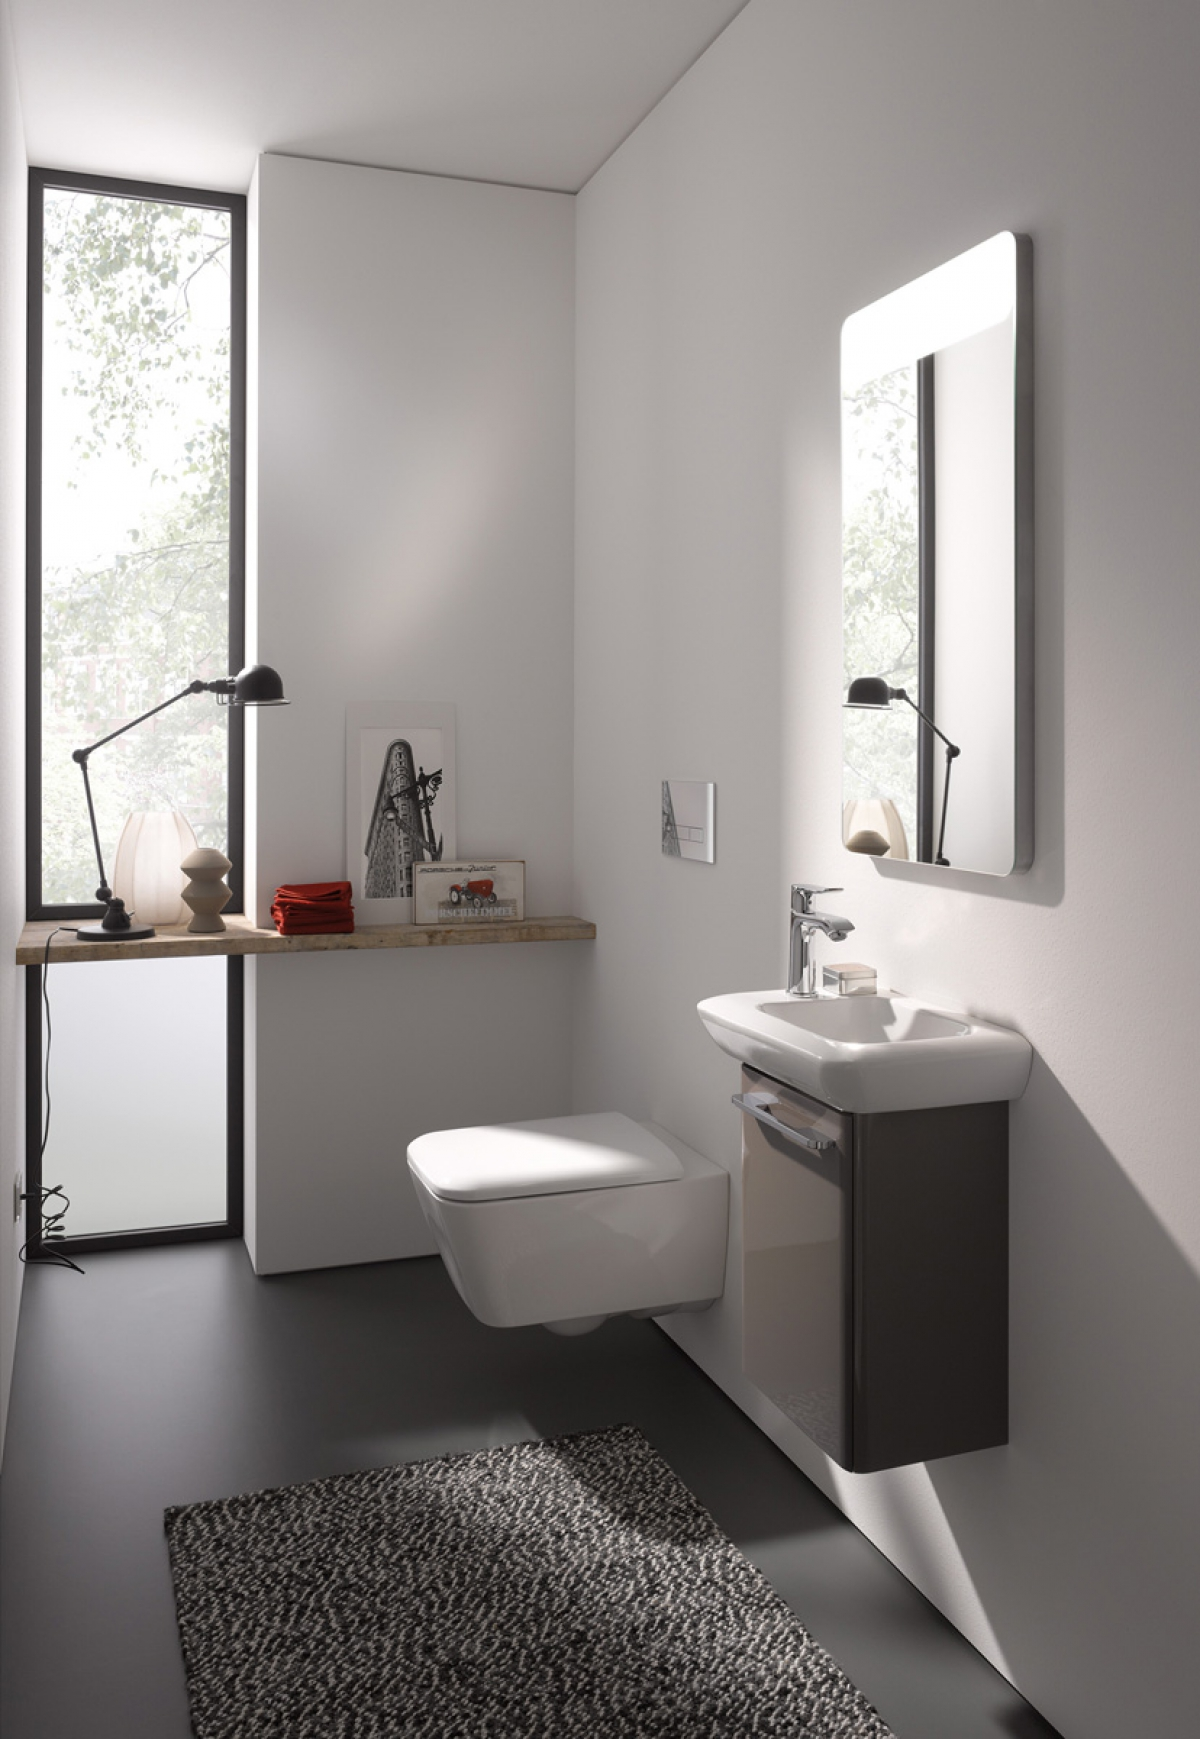 wc suspendu rimfree it keramag induscabel salle de bains chauffage et cuisine. Black Bedroom Furniture Sets. Home Design Ideas